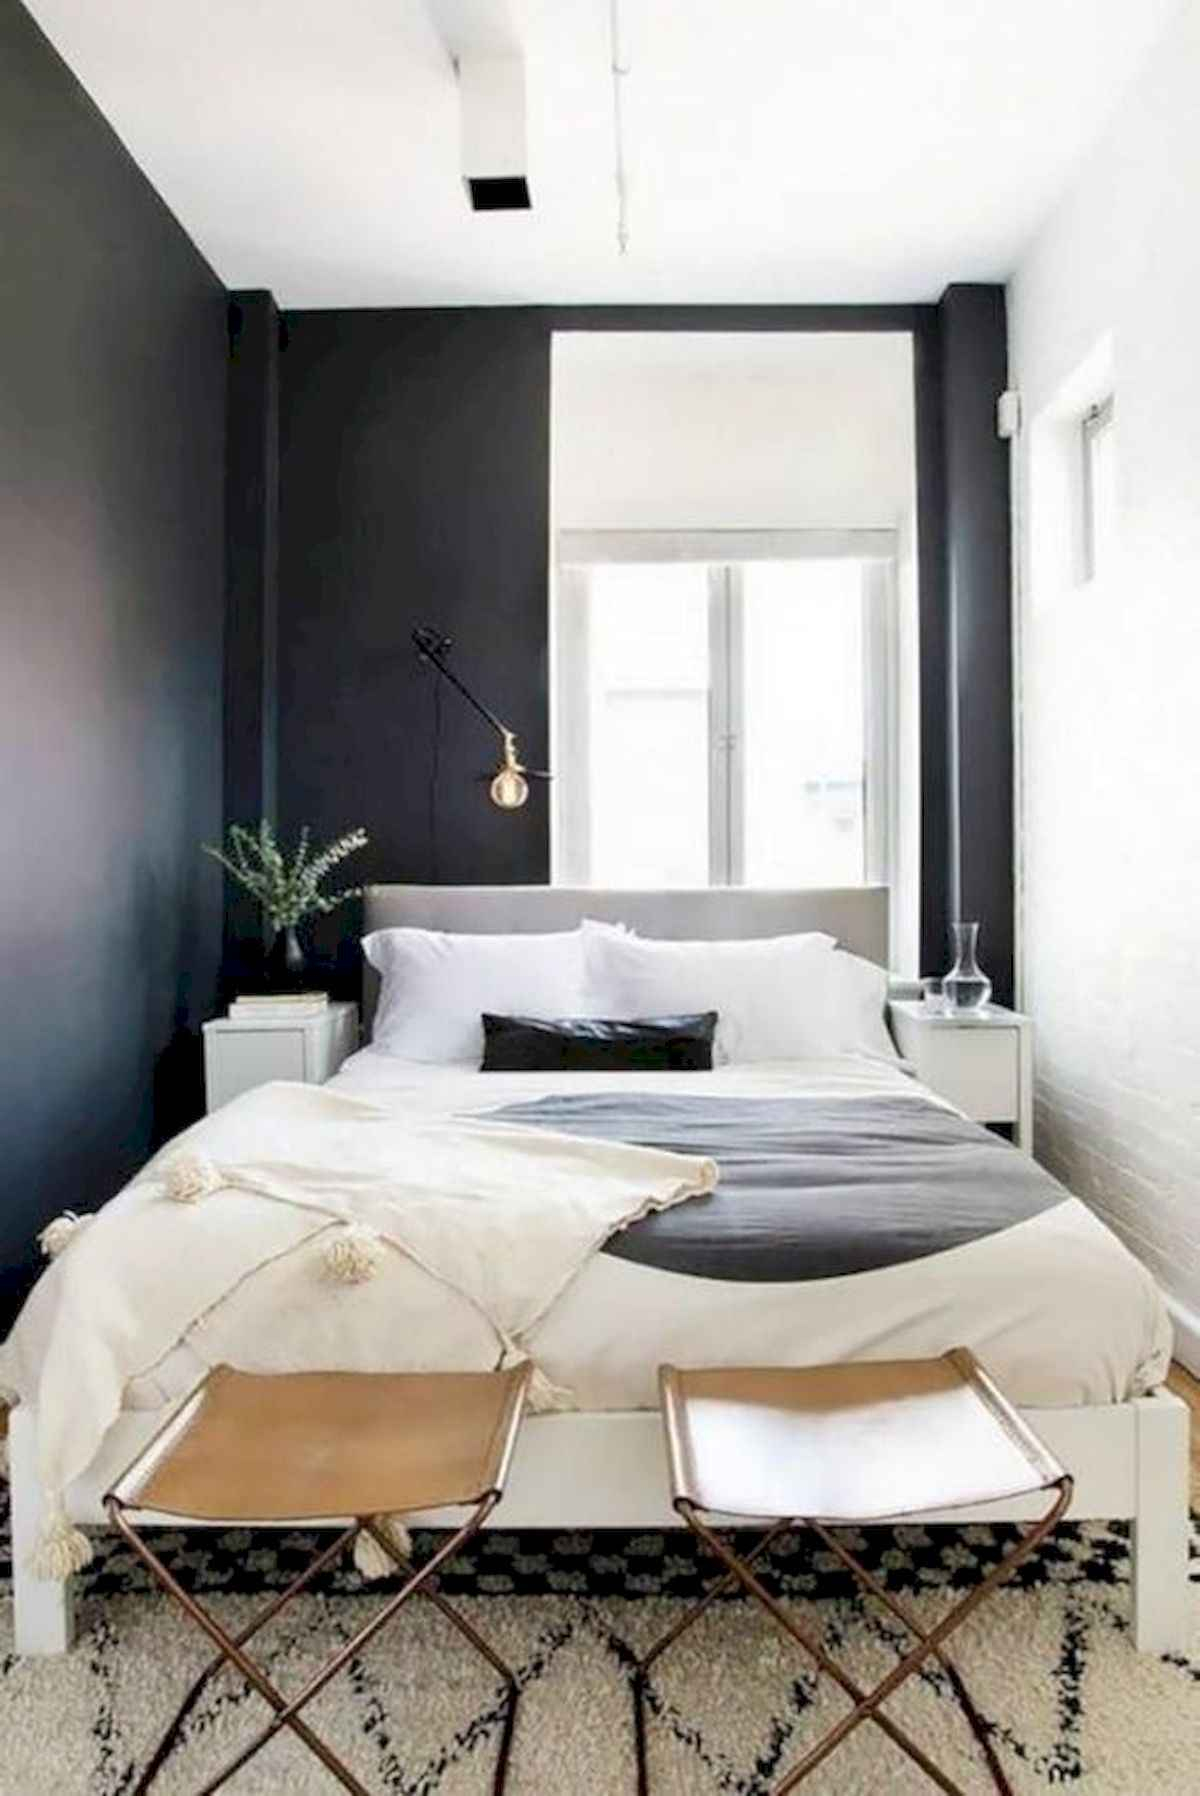 10 Most Popular Small Apartment Bedroom Decorating Ideas 40 creative small apartment bedroom decor ideas 14 roomadness 2021